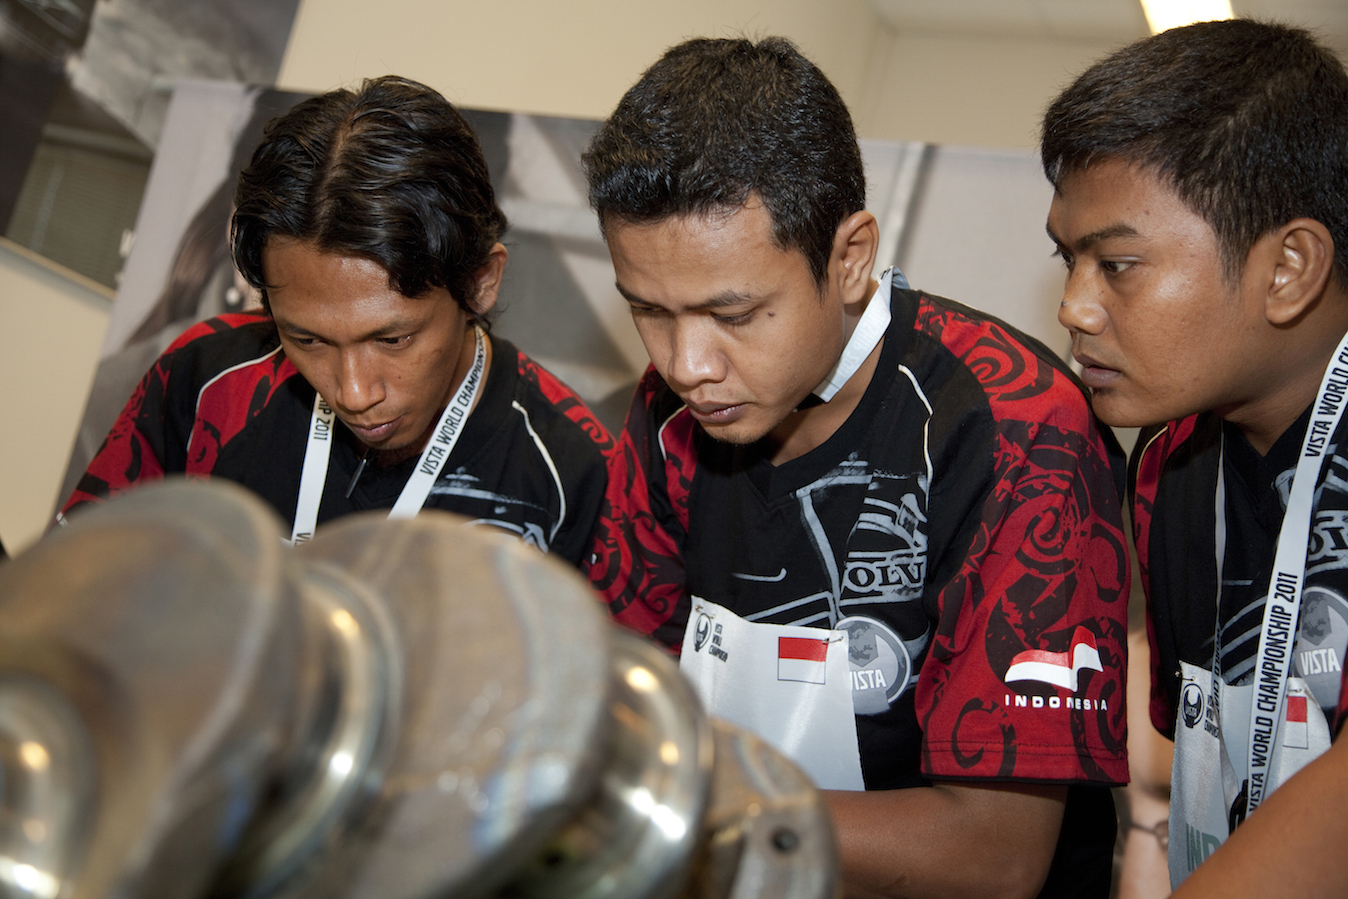 Over 99 per cent completion rate in Asia-Pacific